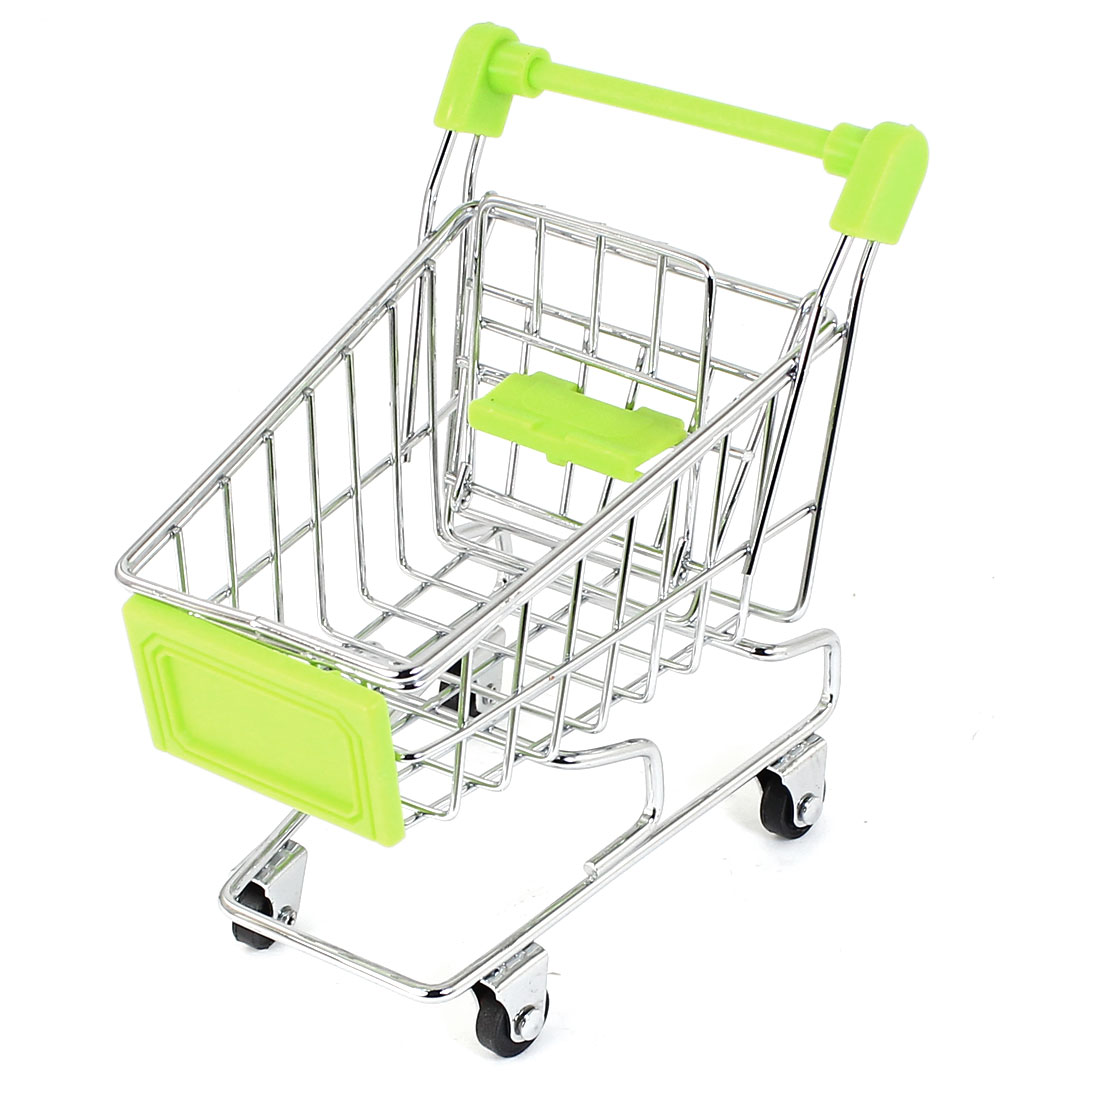 "Metal Mini Trolley Model Removable Storage Rack 4"" High Green"